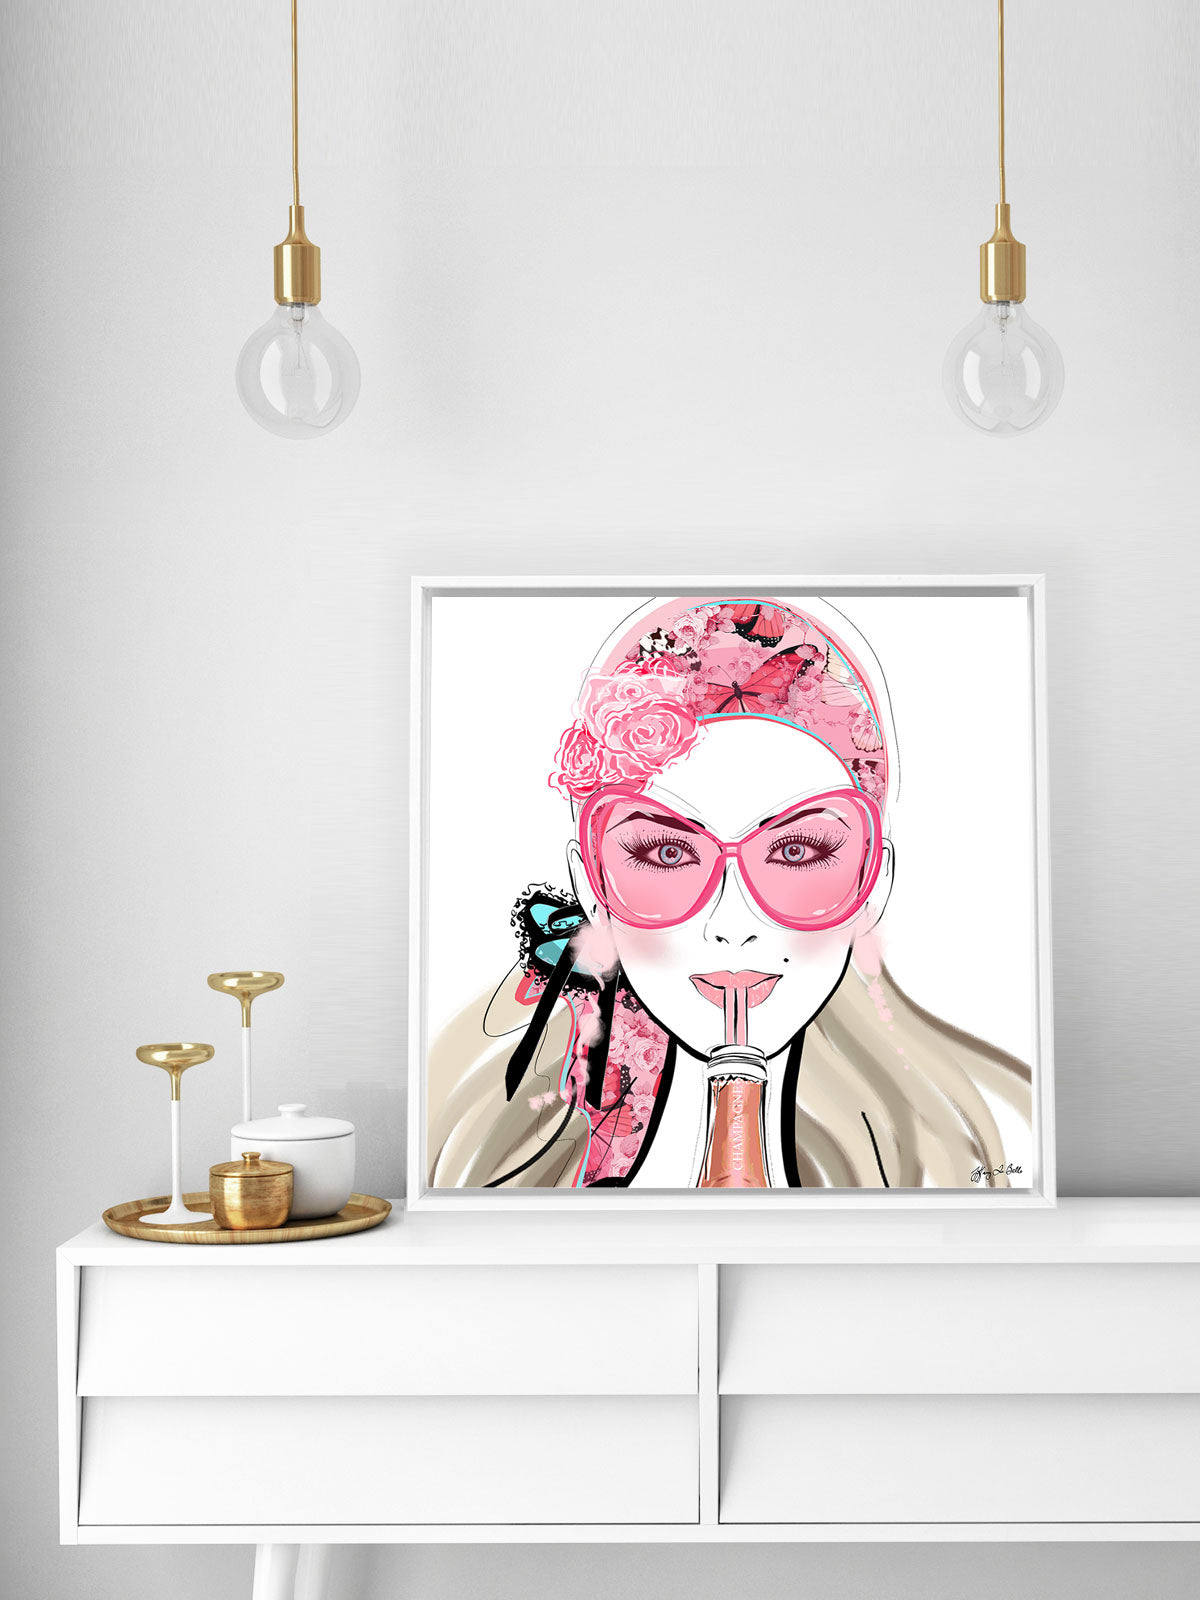 Who Needs a Glass? - Illustration - Canvas Gallery Print - Unframed or Framed